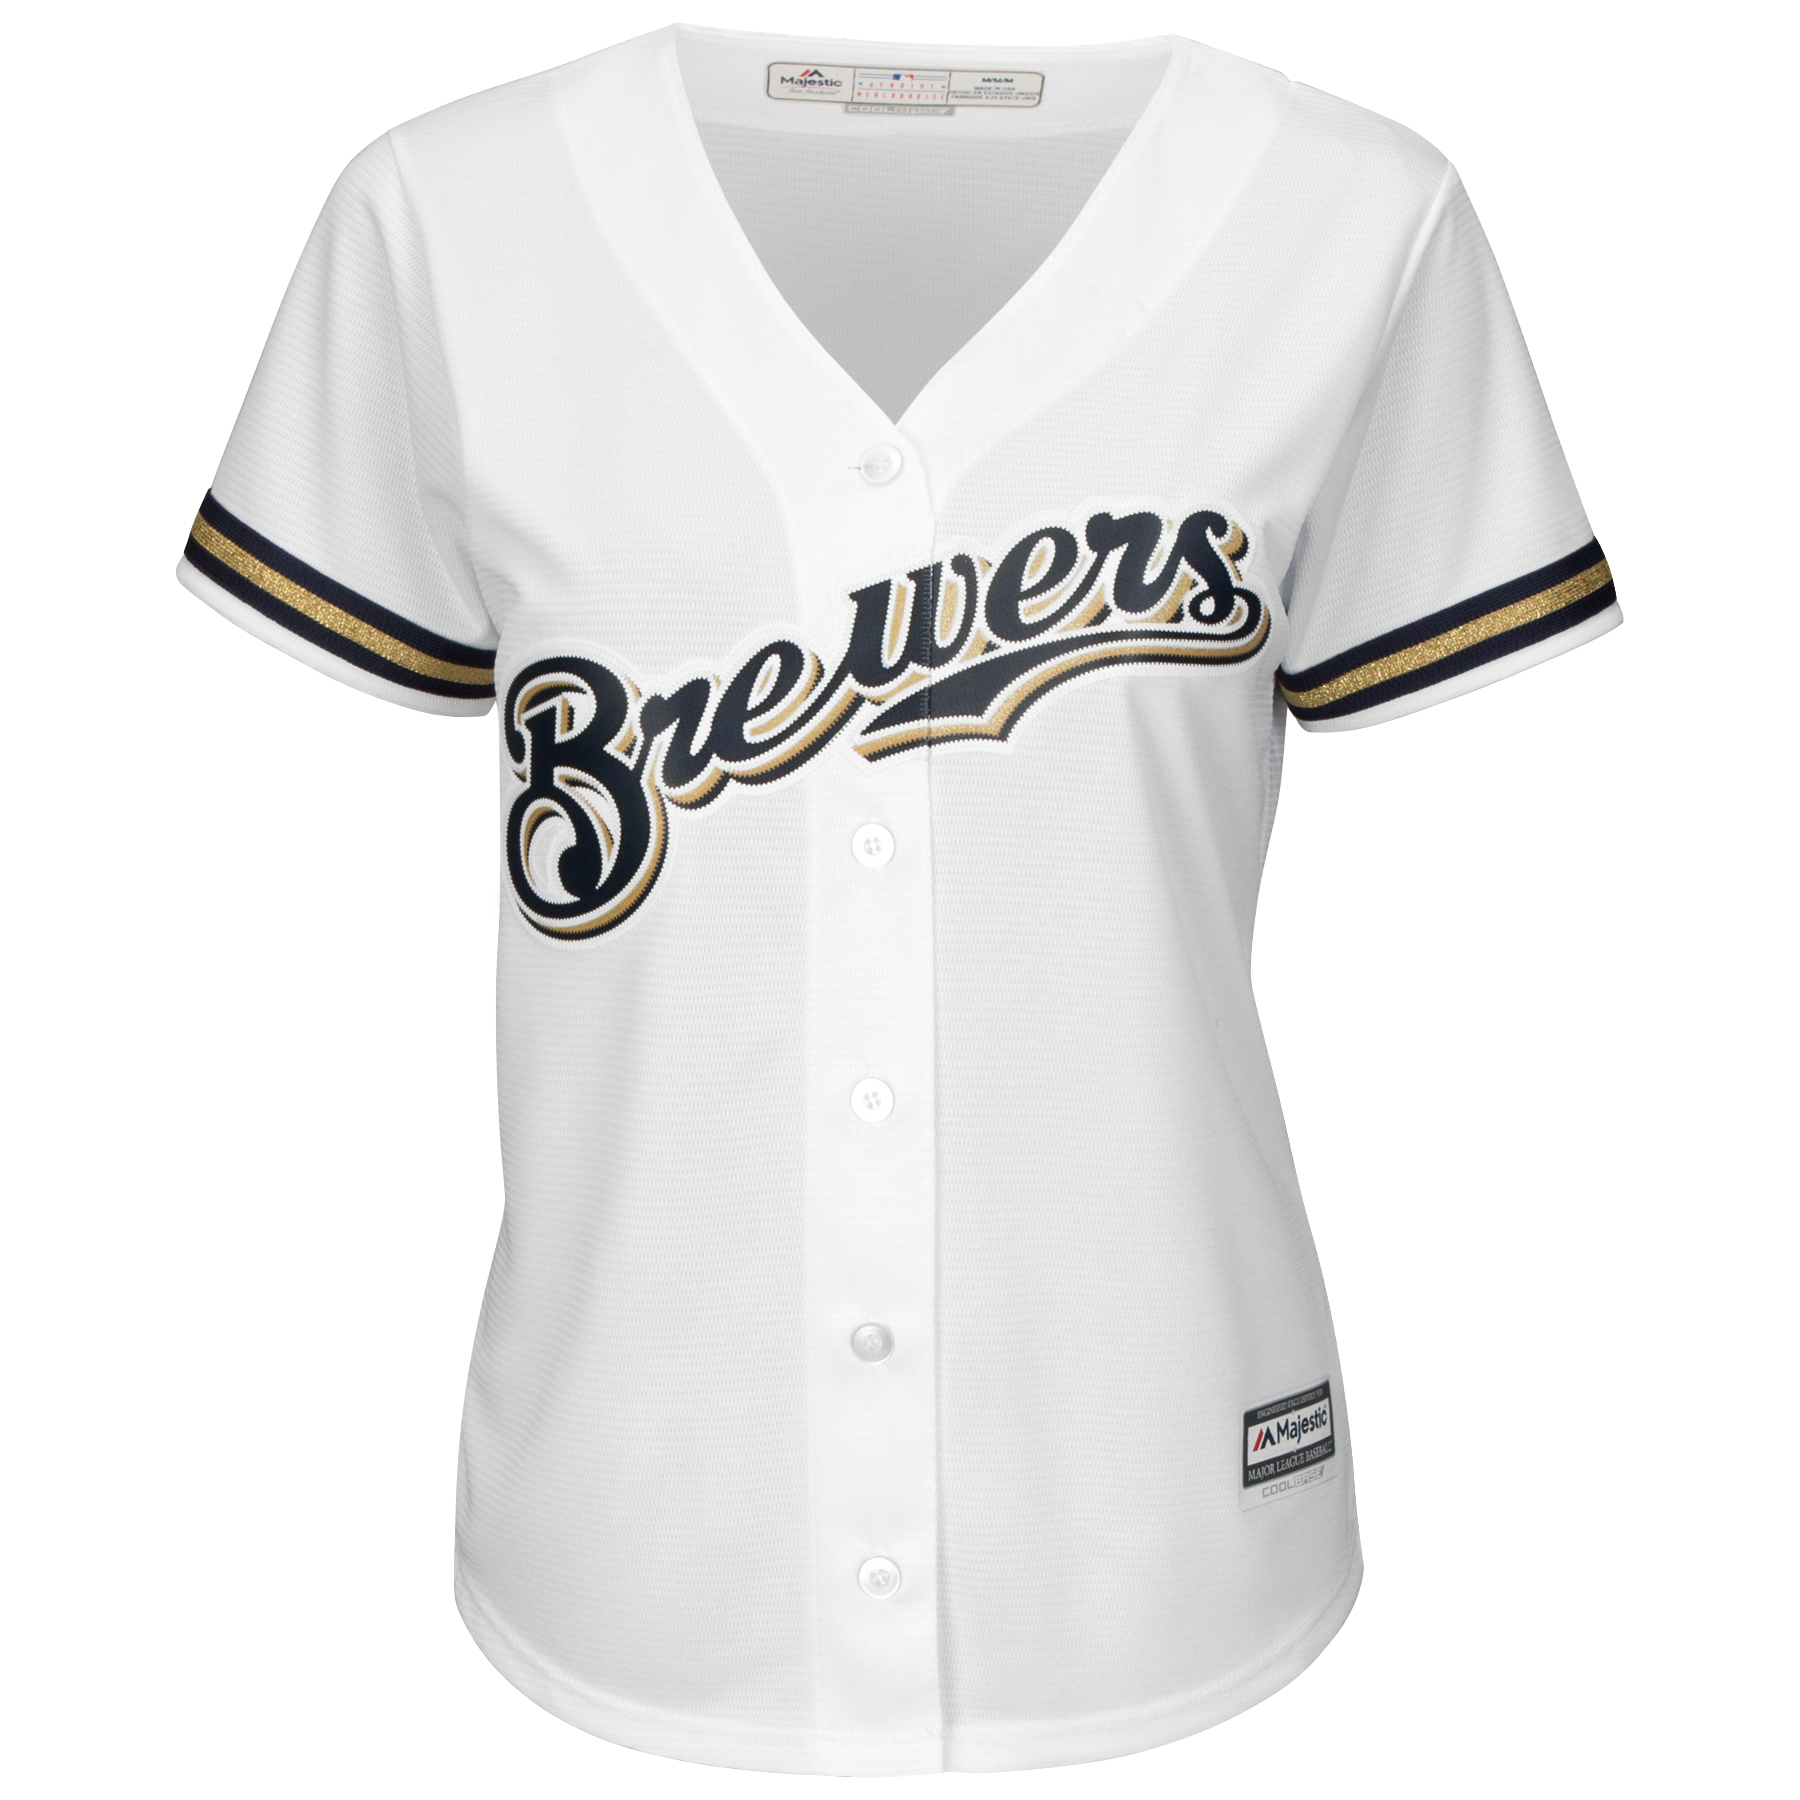 Ryan Braun Milwaukee Brewers Majestic Women s Alternate Cool Base Replica  Player Jersey - White - Walmart.com 5e7e25285